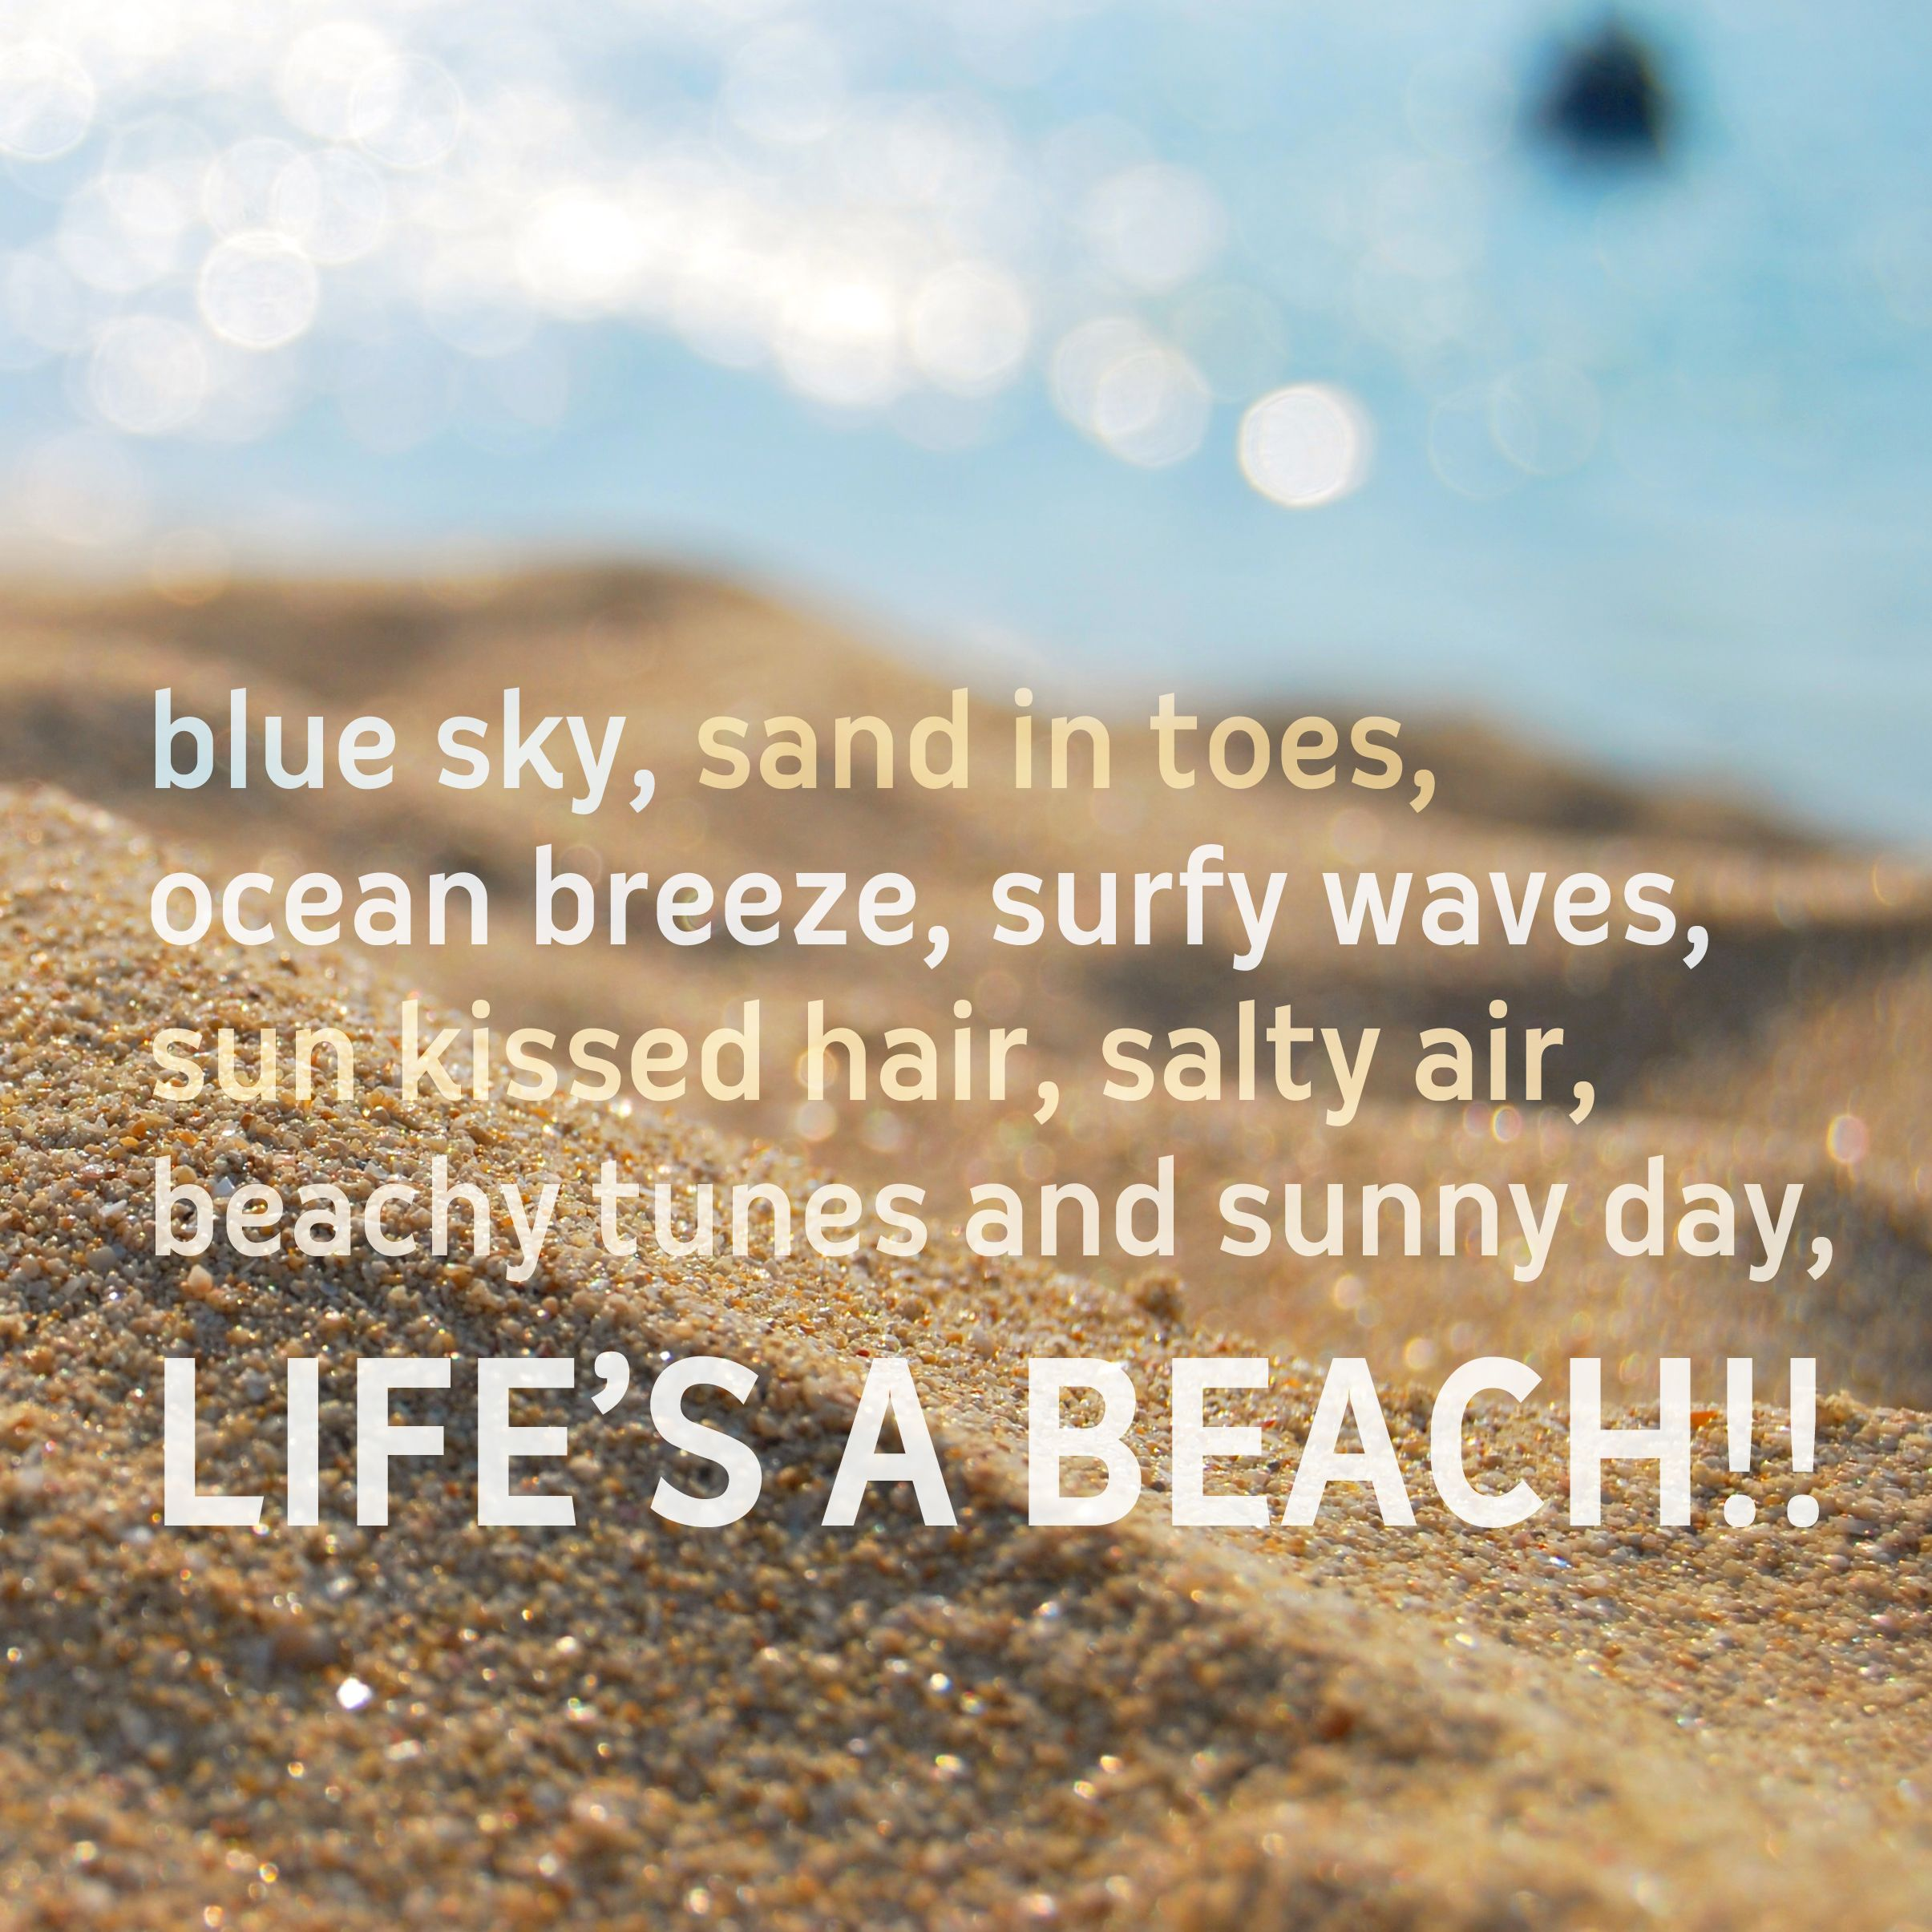 Quotes Sunsets Beach Aadaeafbccabe